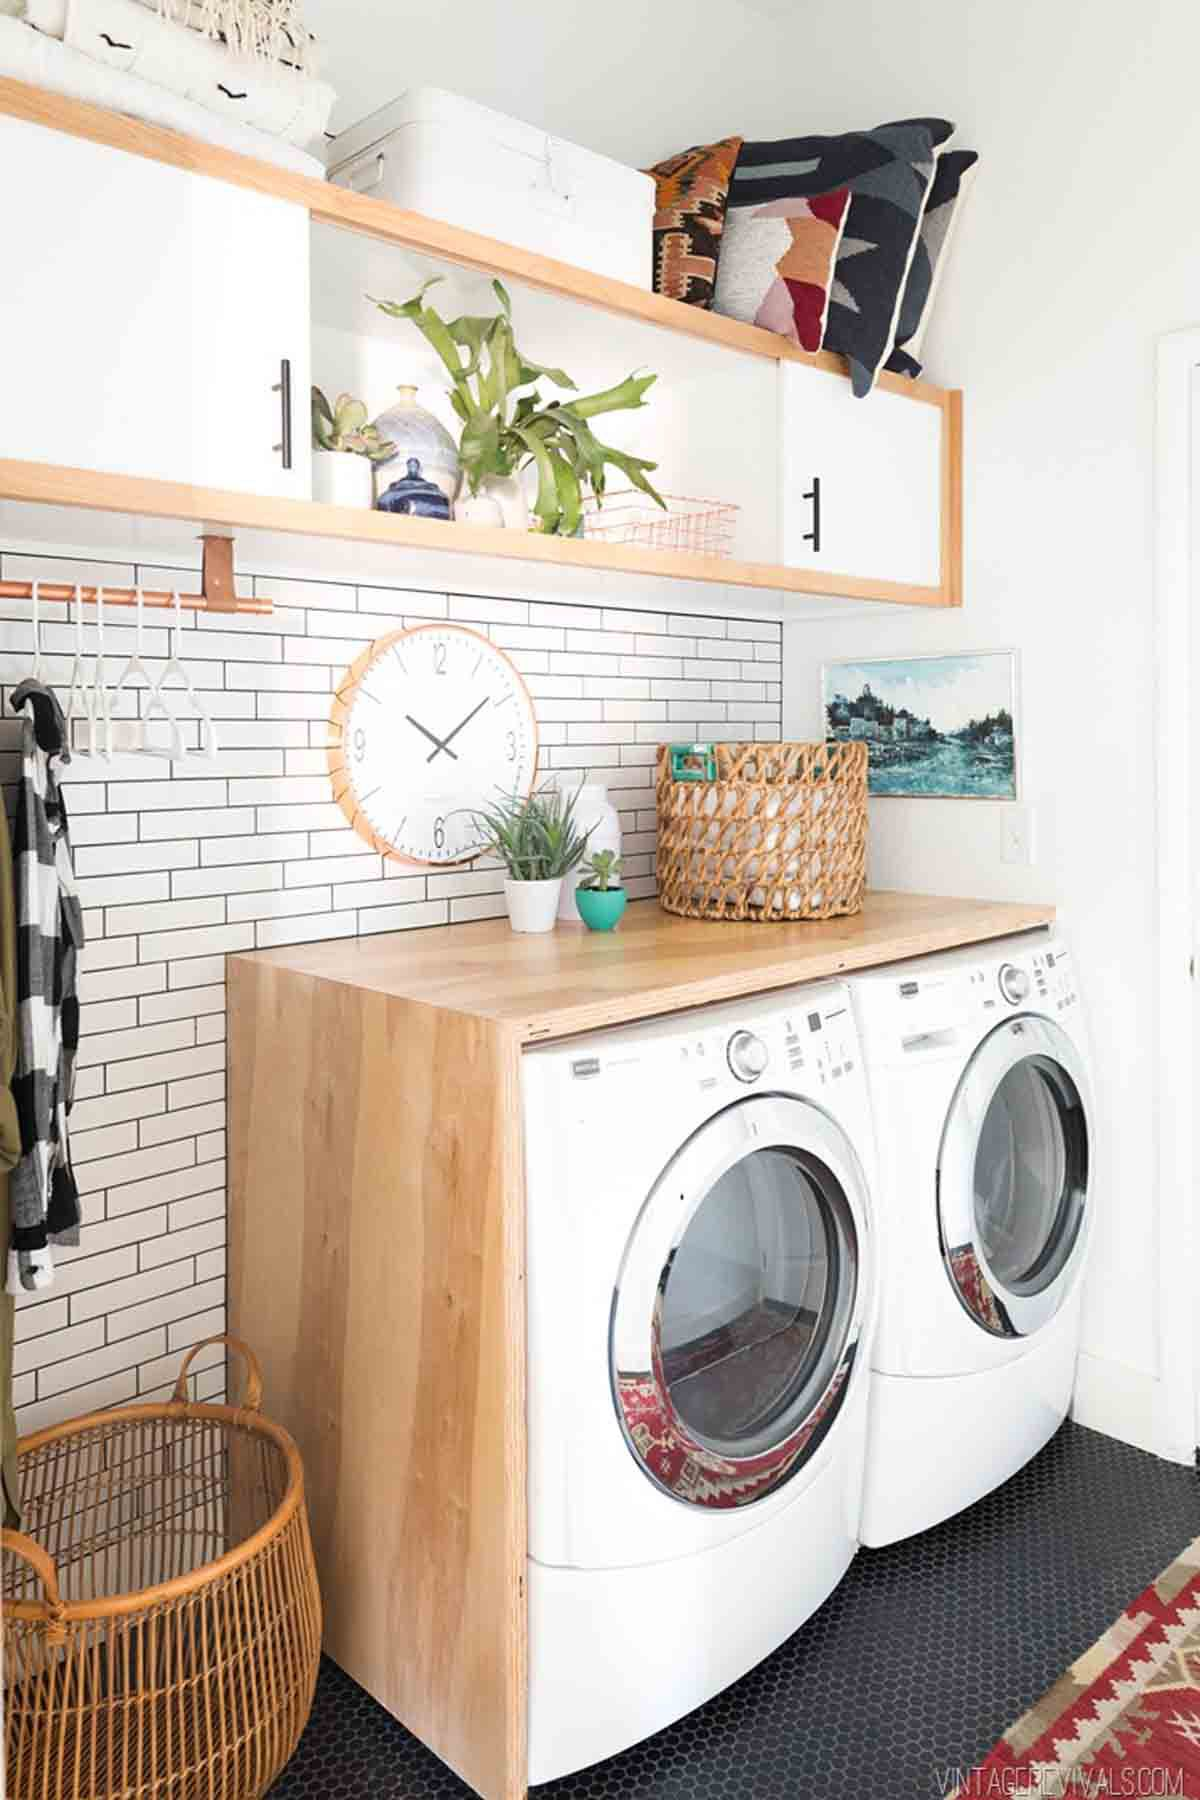 20 Laundry Room Storage and Organization Ideas - How To Organize